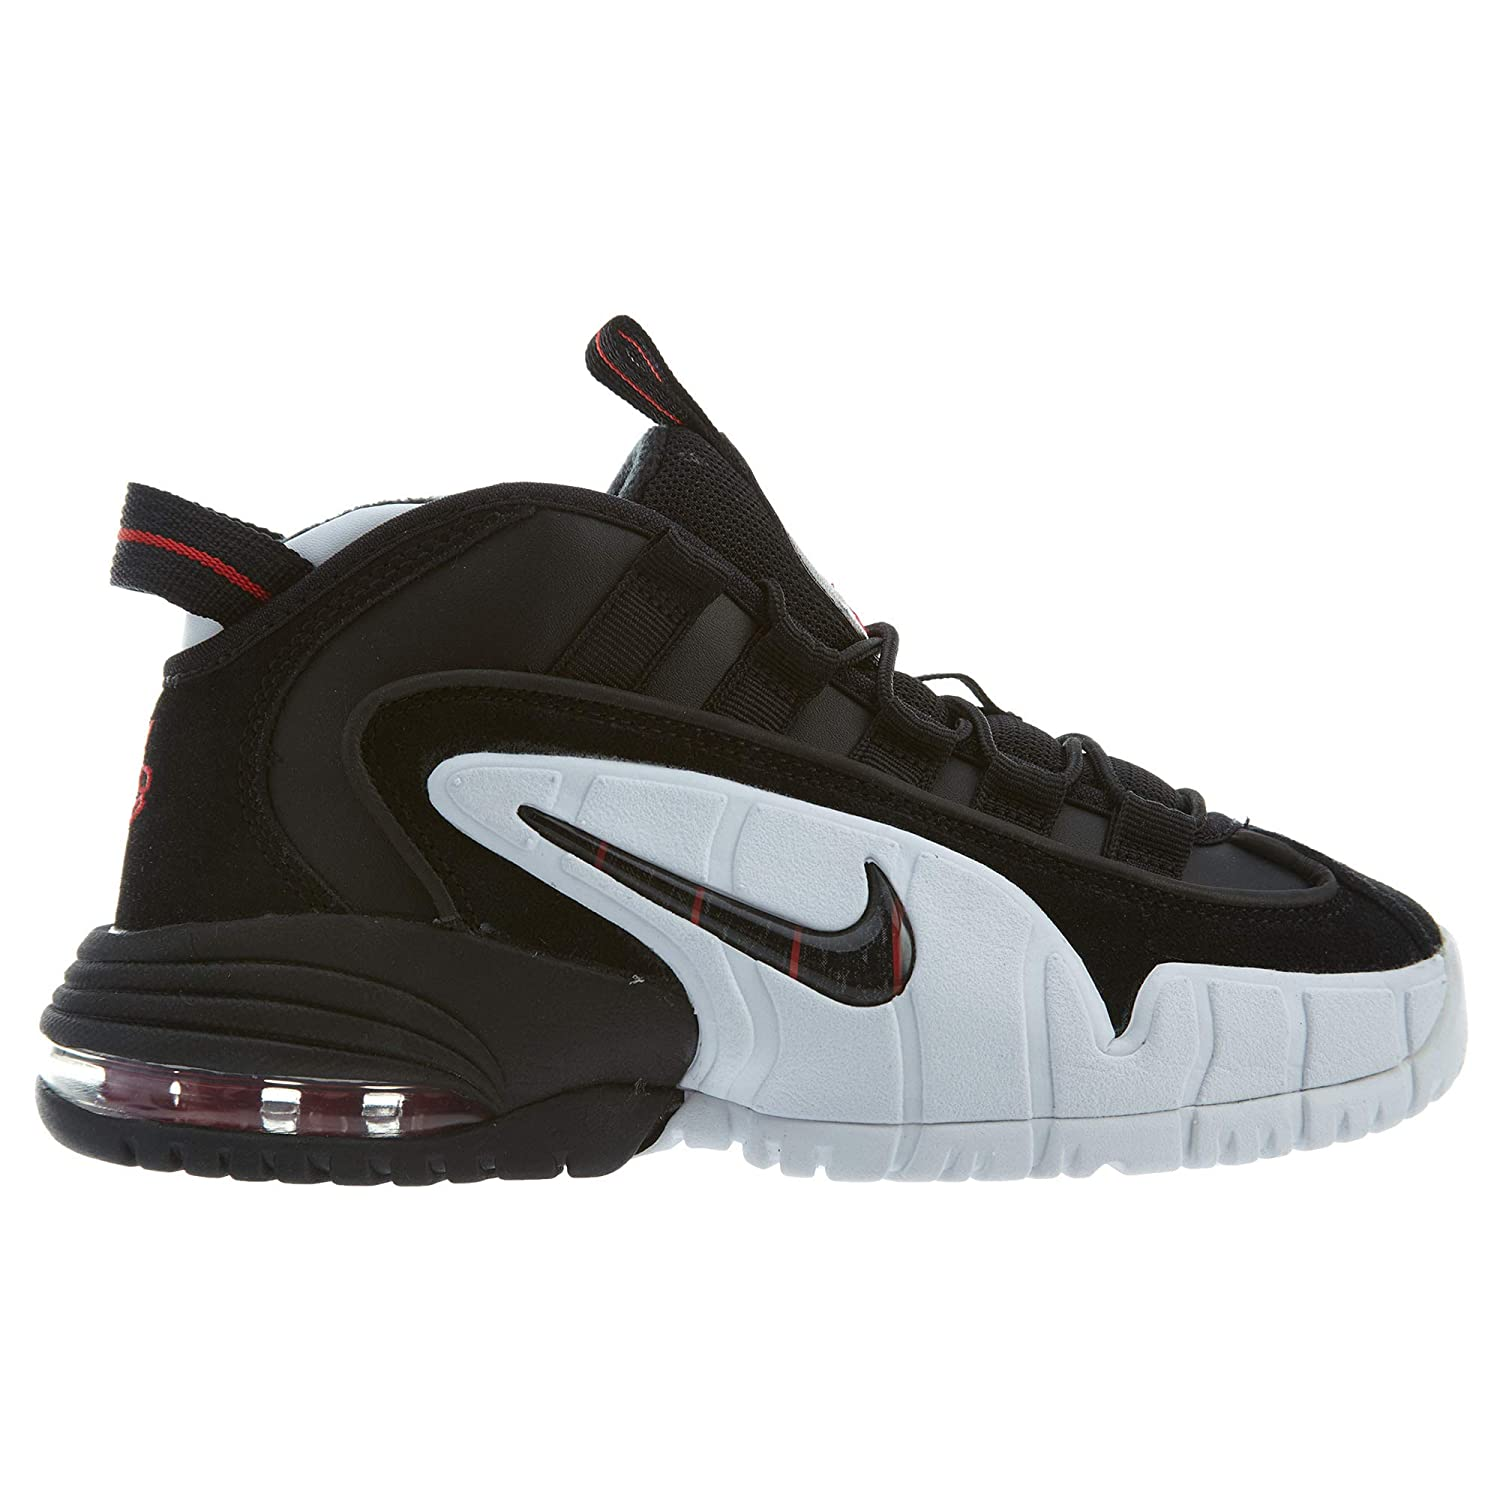 NIKE Air Max Penny Le Big Kids